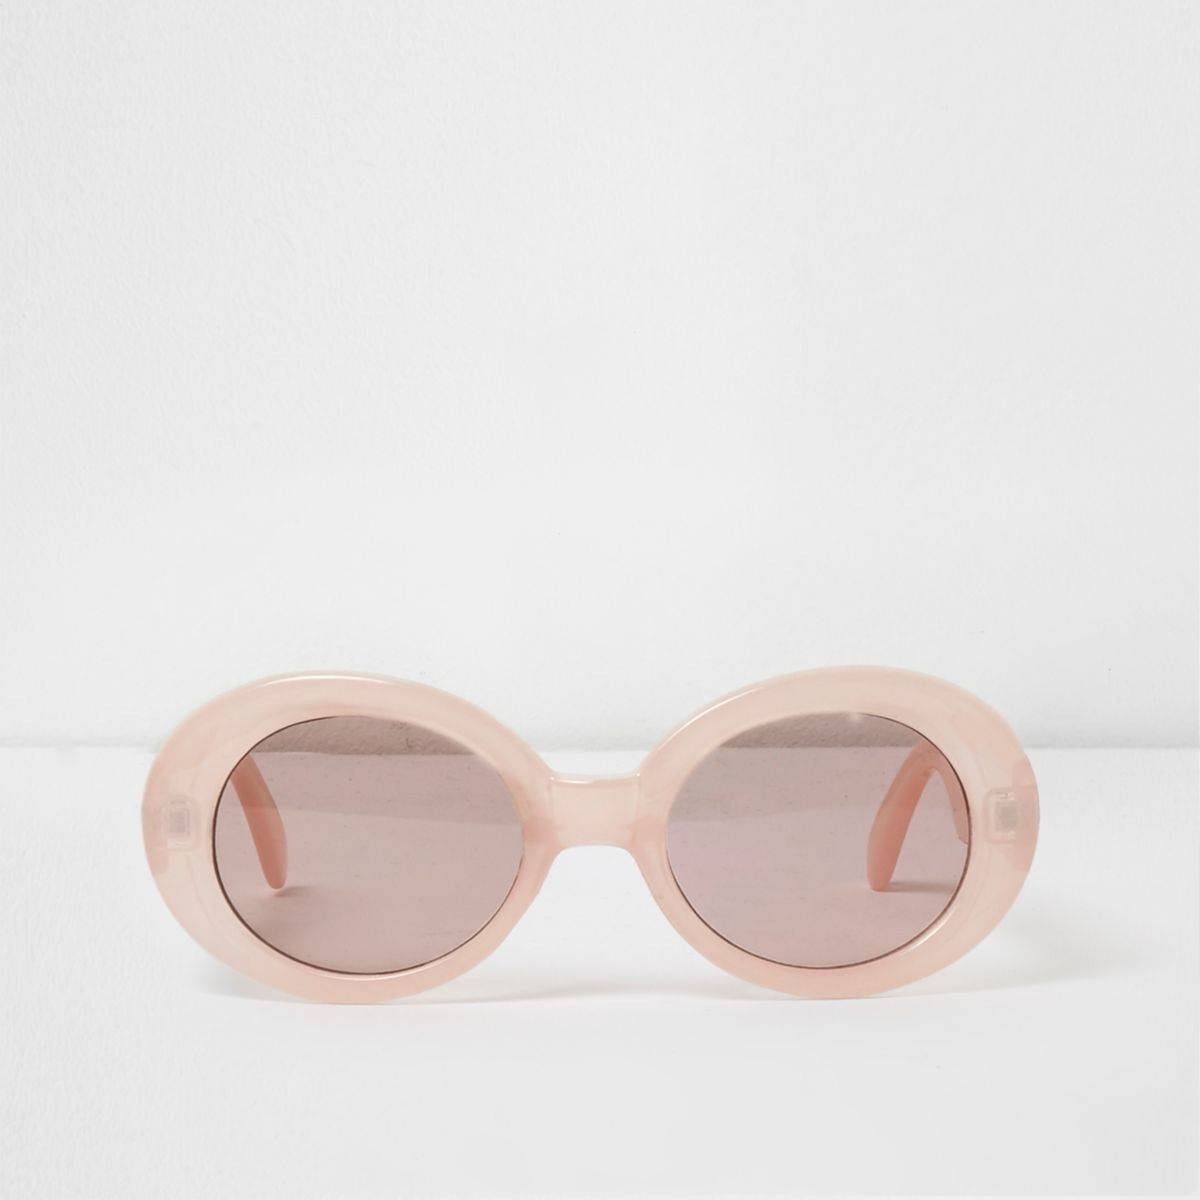 River Island Womens Pink oval sunglasses (One Size)